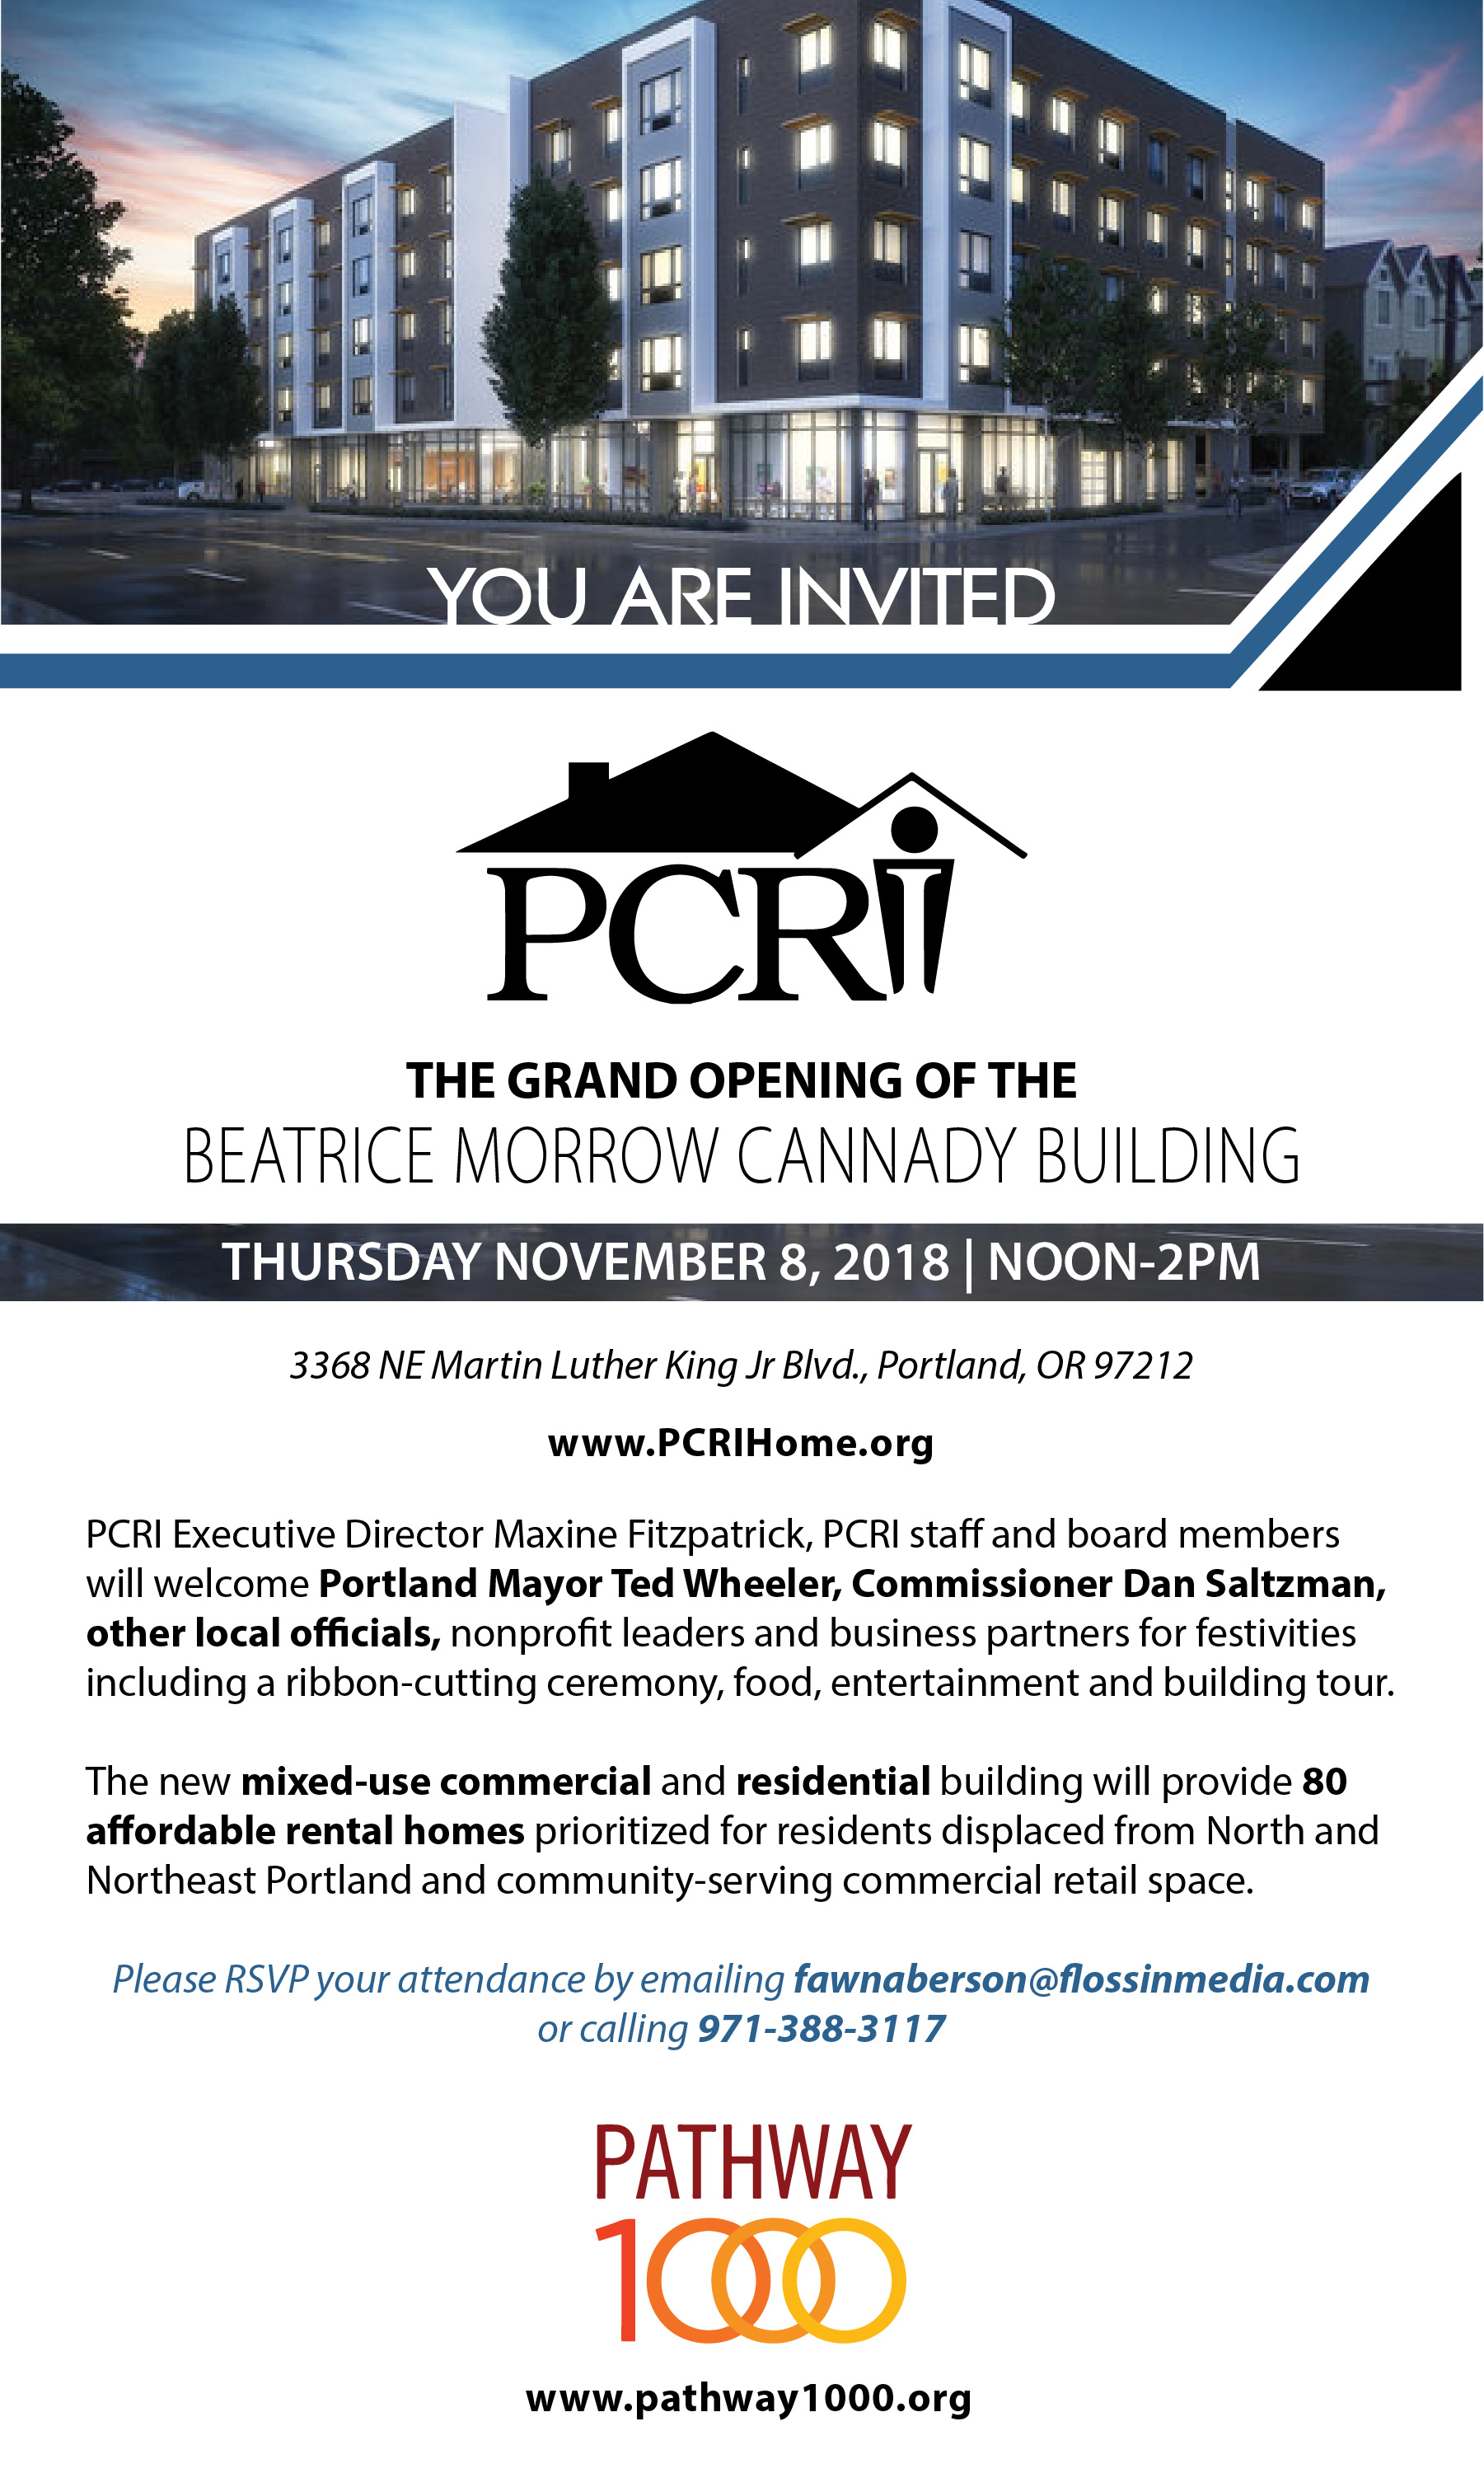 pcri invites partners and community members to the beatrice morrow cannady building for a grand opening celebration on november 8 from noon to 200 pm